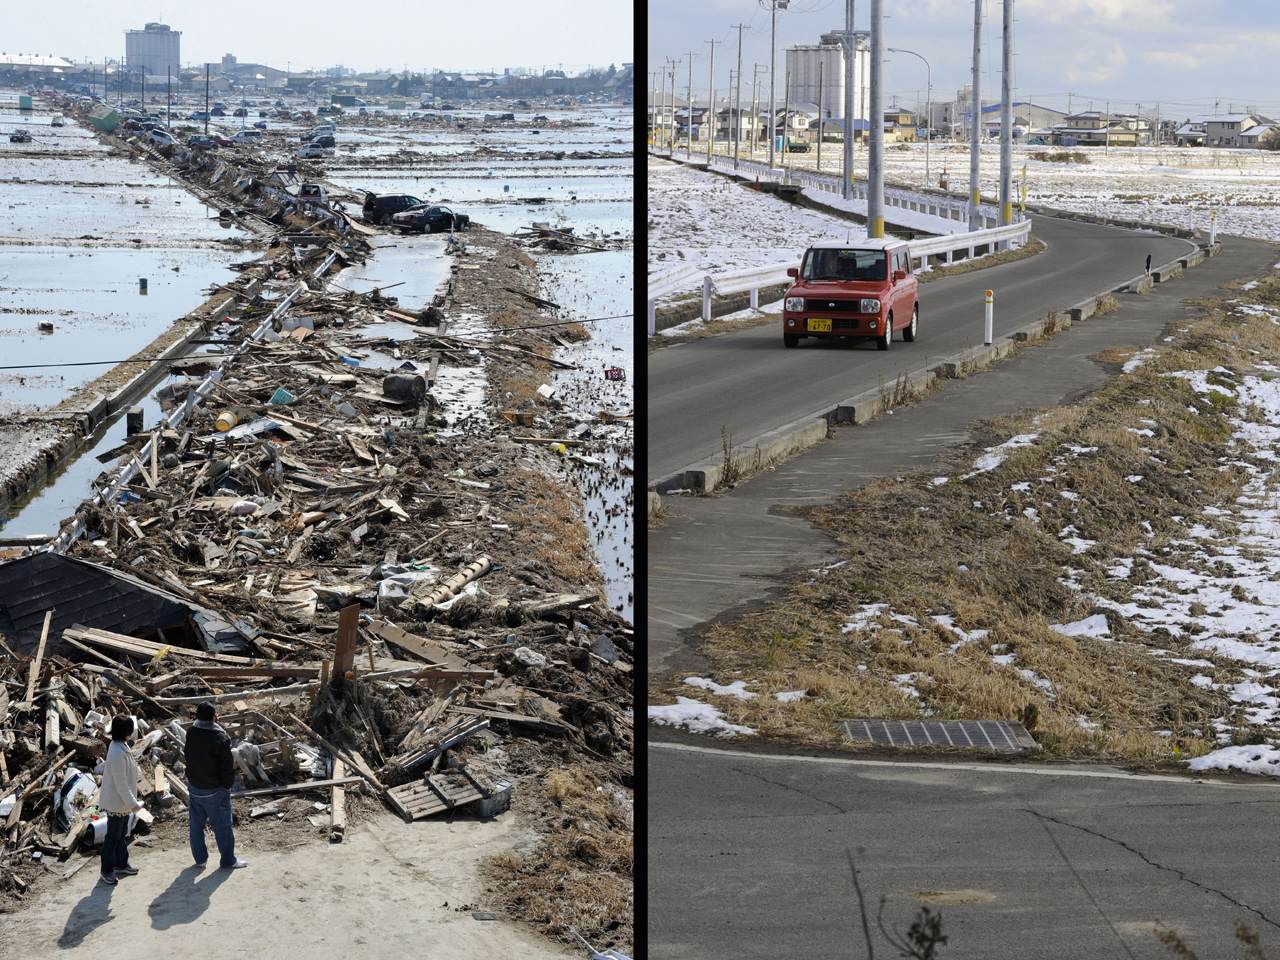 tsunami in japan in 2011 250 words On march 11, 2011, a large earthquake occurred, causing a tsunami which struck the pacific coast of northeast japan we investigated the s2) furthermore, this area showed ground subsidence of 300–600 mm from the 2011 earthquake, which allowed the inundation of seawater (t sumi, unpubl data.